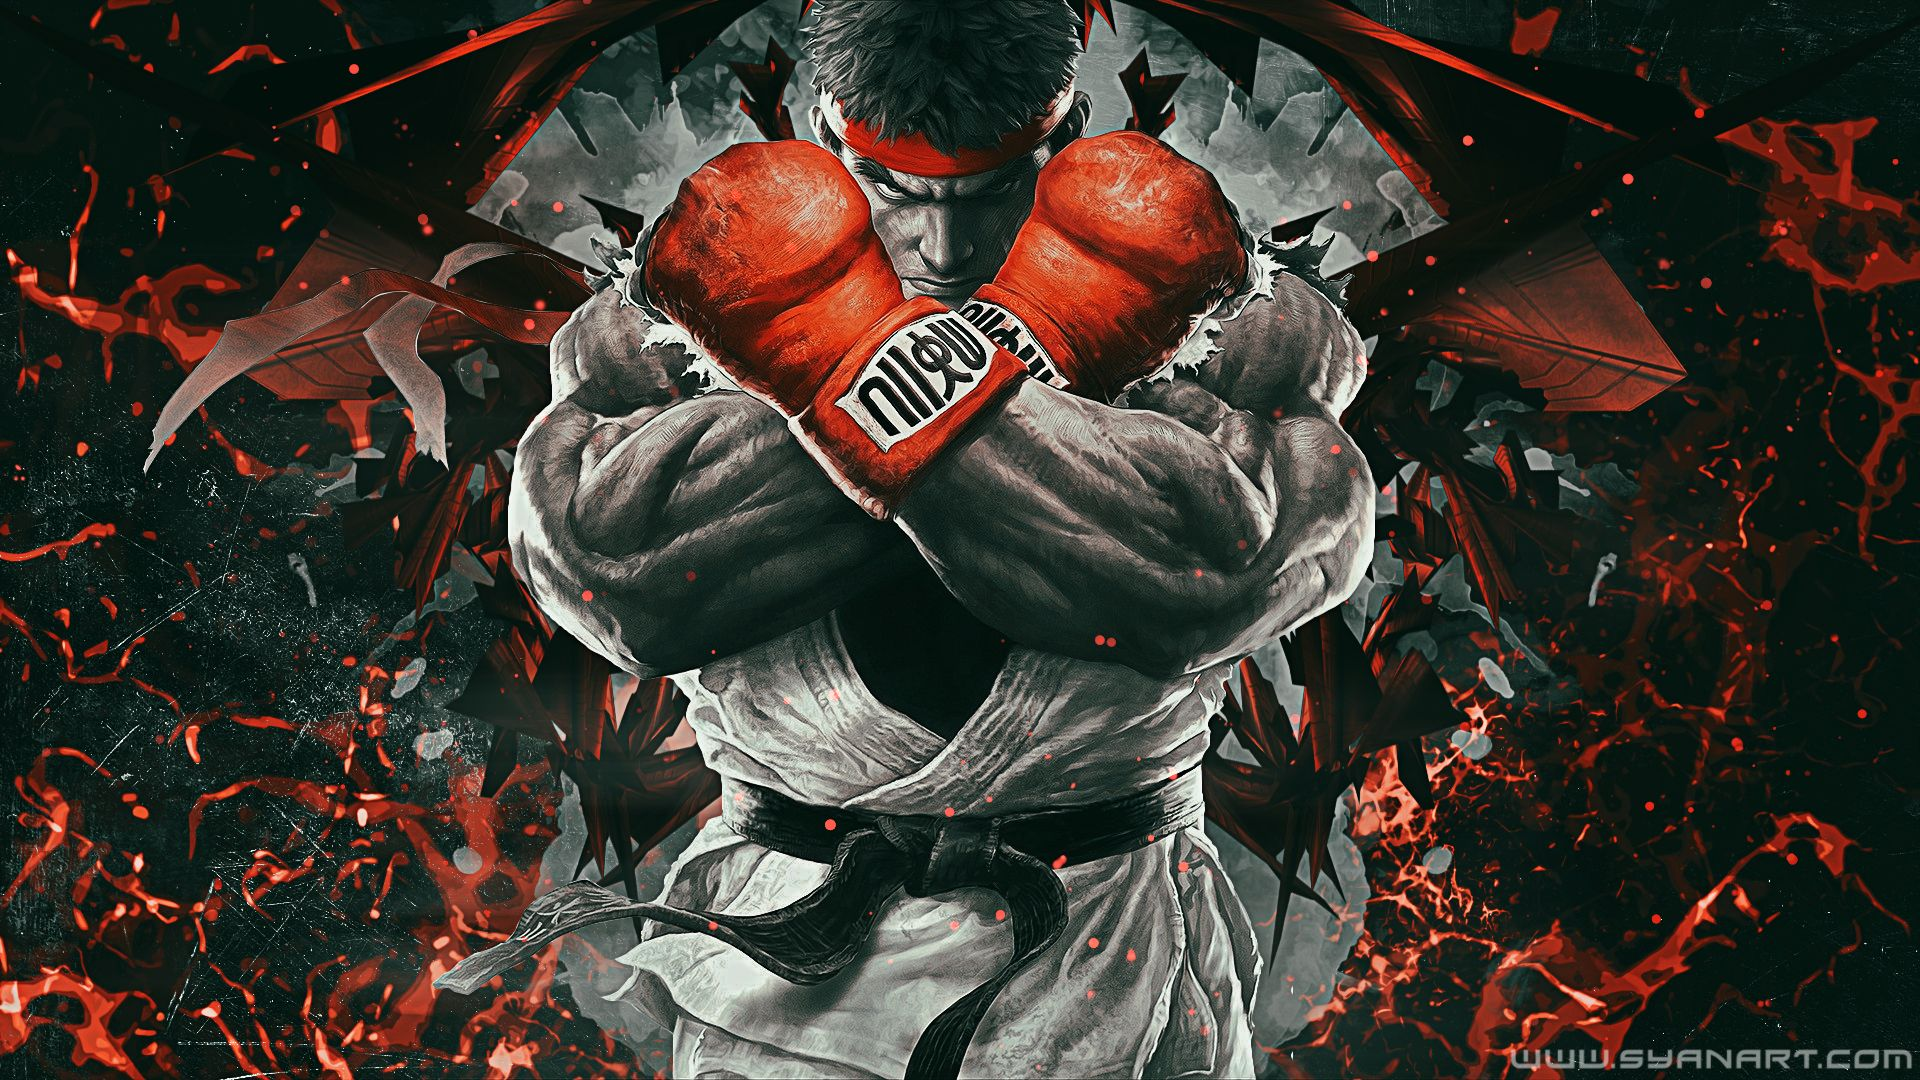 ryu street fighter 5 wallpaper